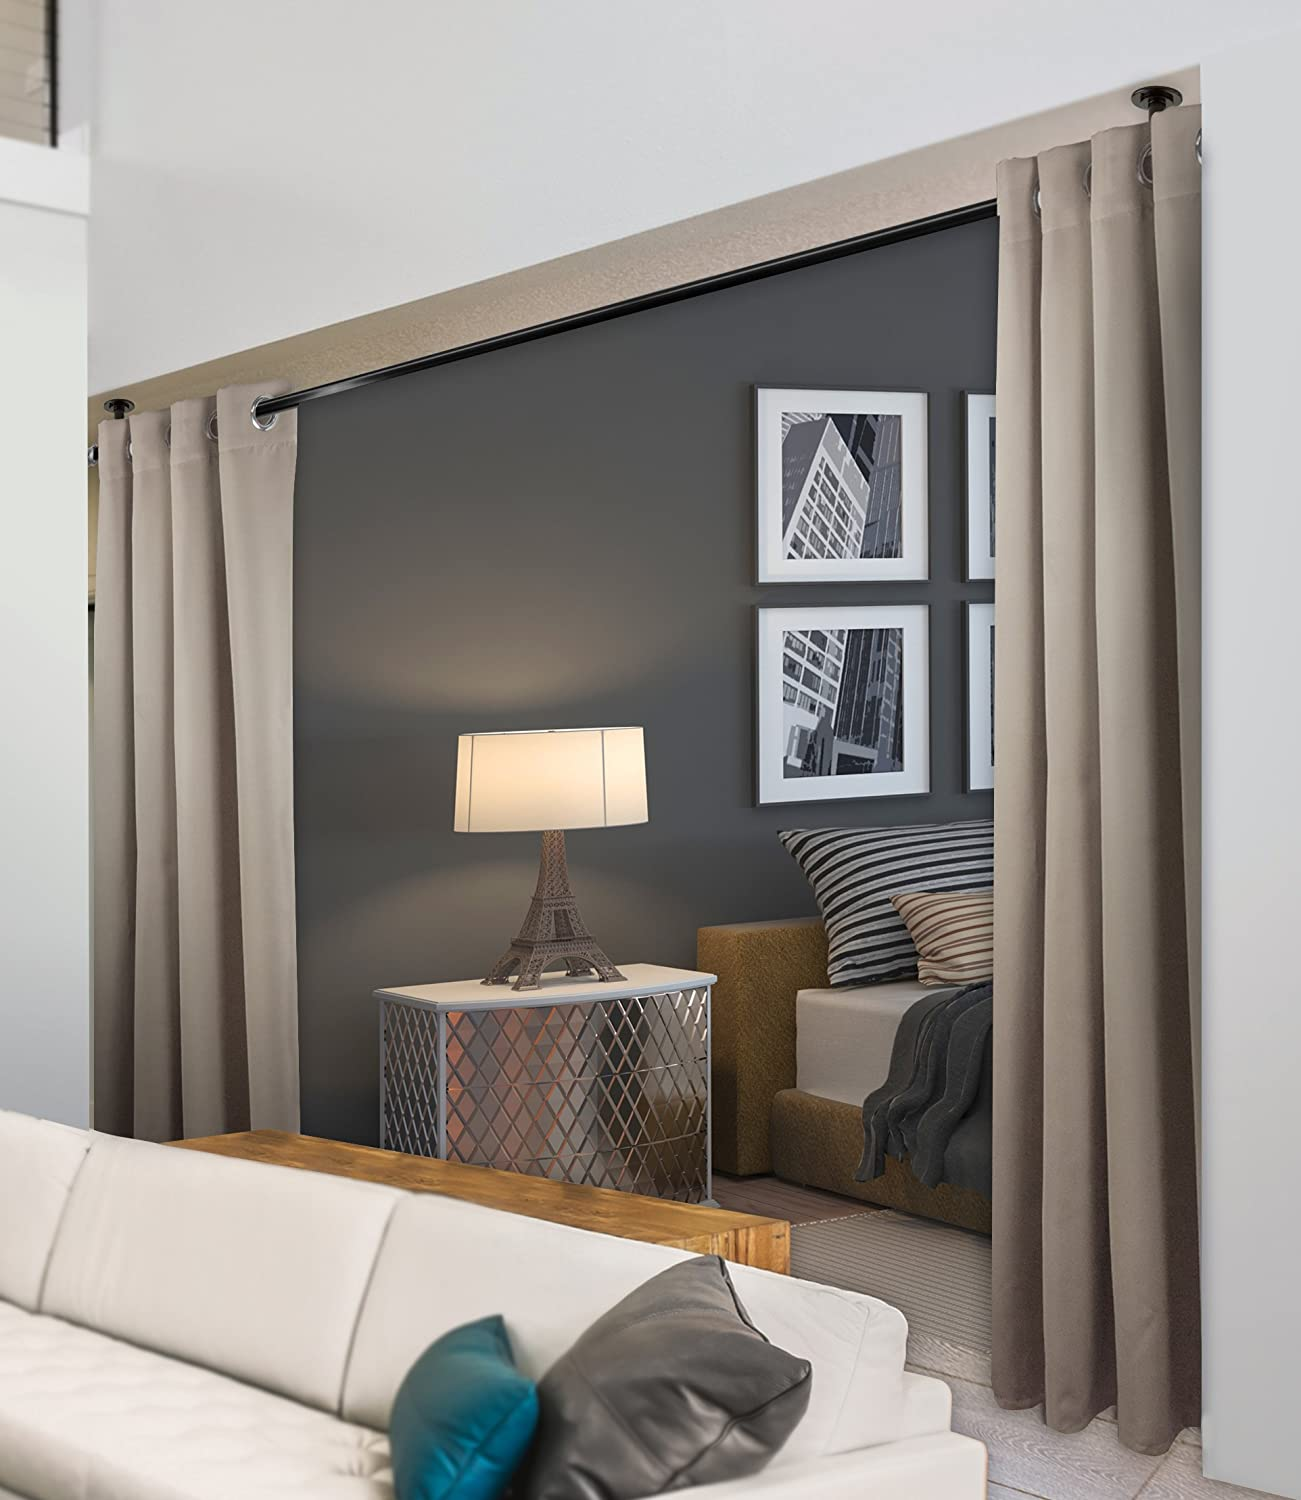 Outlet SALE Rod Desyne Window Thermal Isulated G Metal with Curtain Blackout Excellence